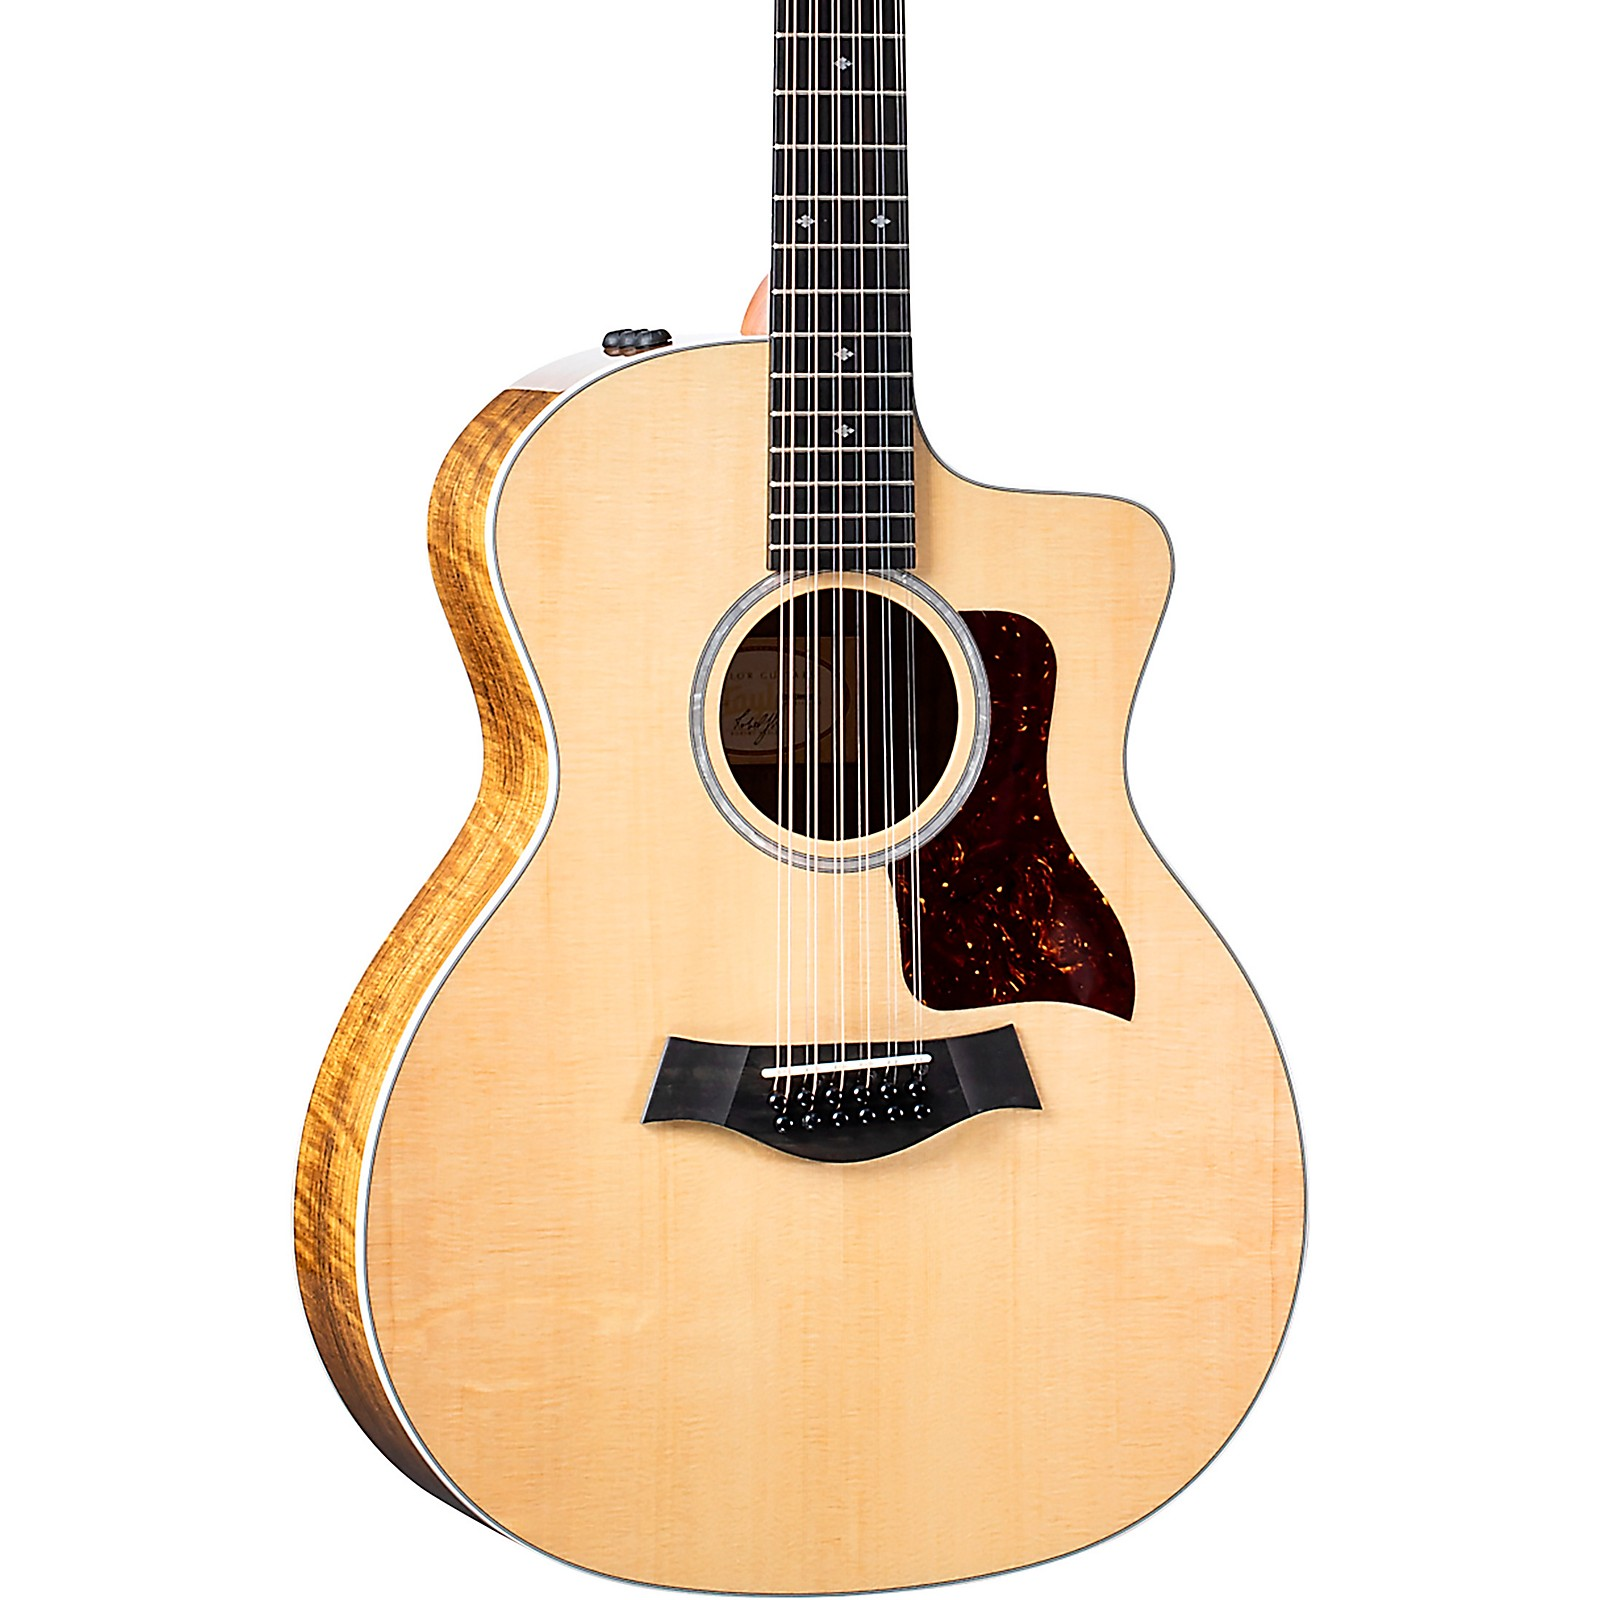 Taylor 254ce Figured Ovangkol Deluxe Limited-Edition 12-String Grand Auditorium Acoustic-Electric Guitar